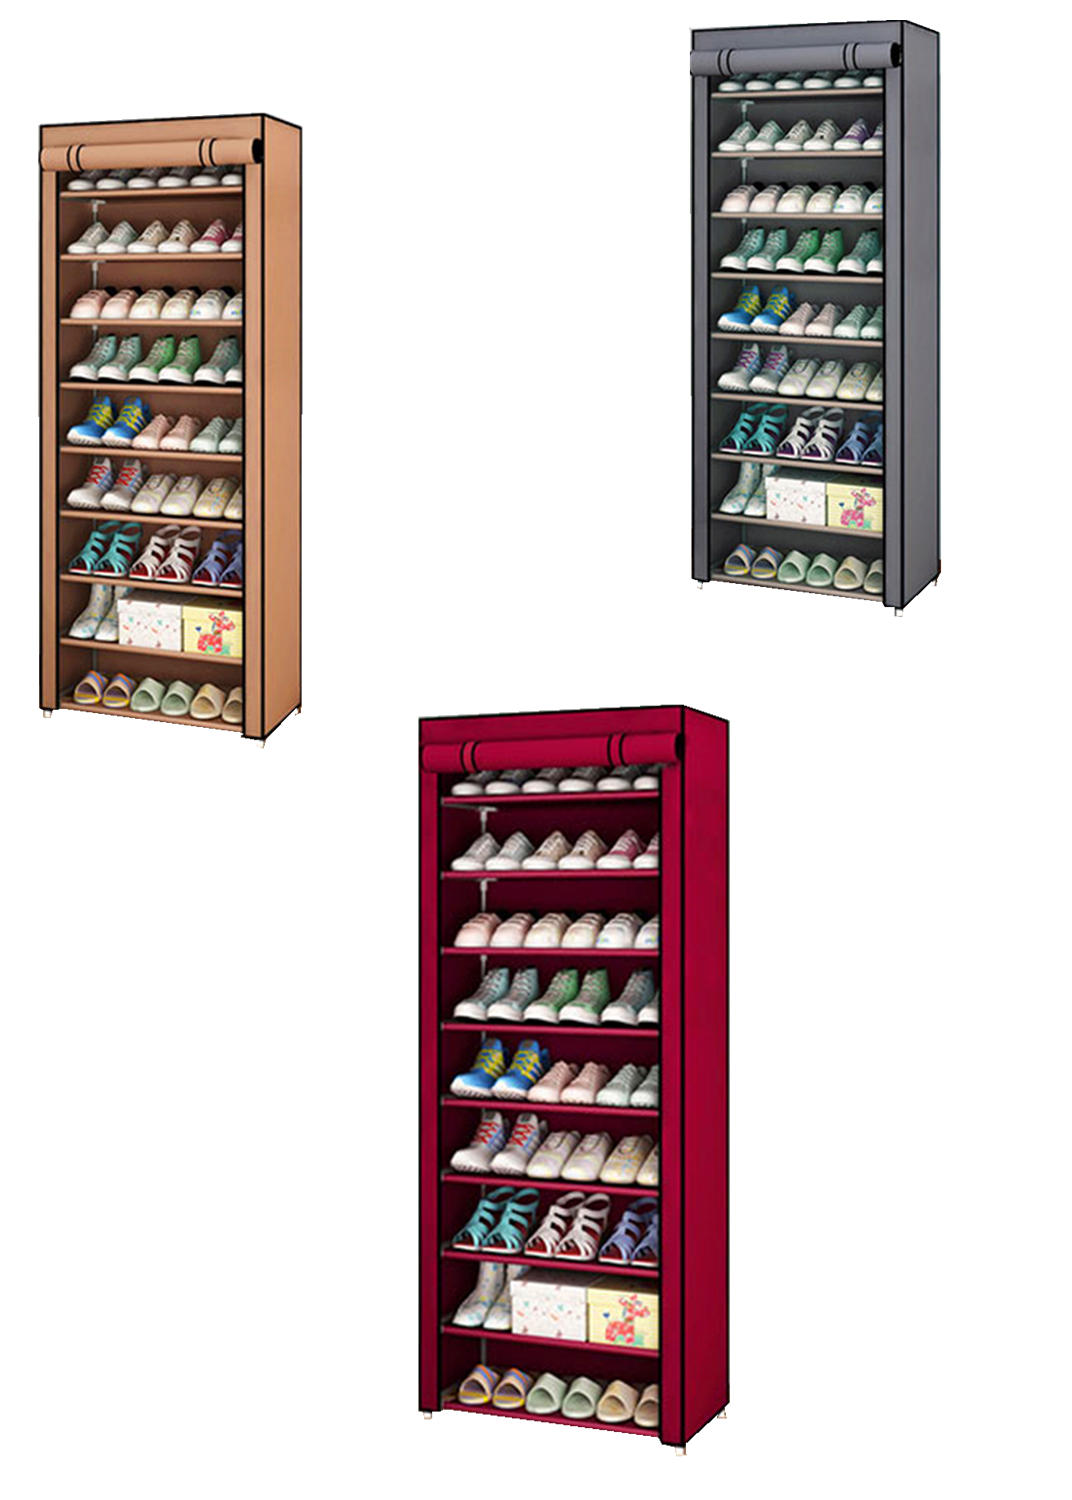 Non-woven Fabric Shoe Rack Hallway Storage Cabinet Organizer Holder Assemble Shoes Shelf DIY Home Furniture